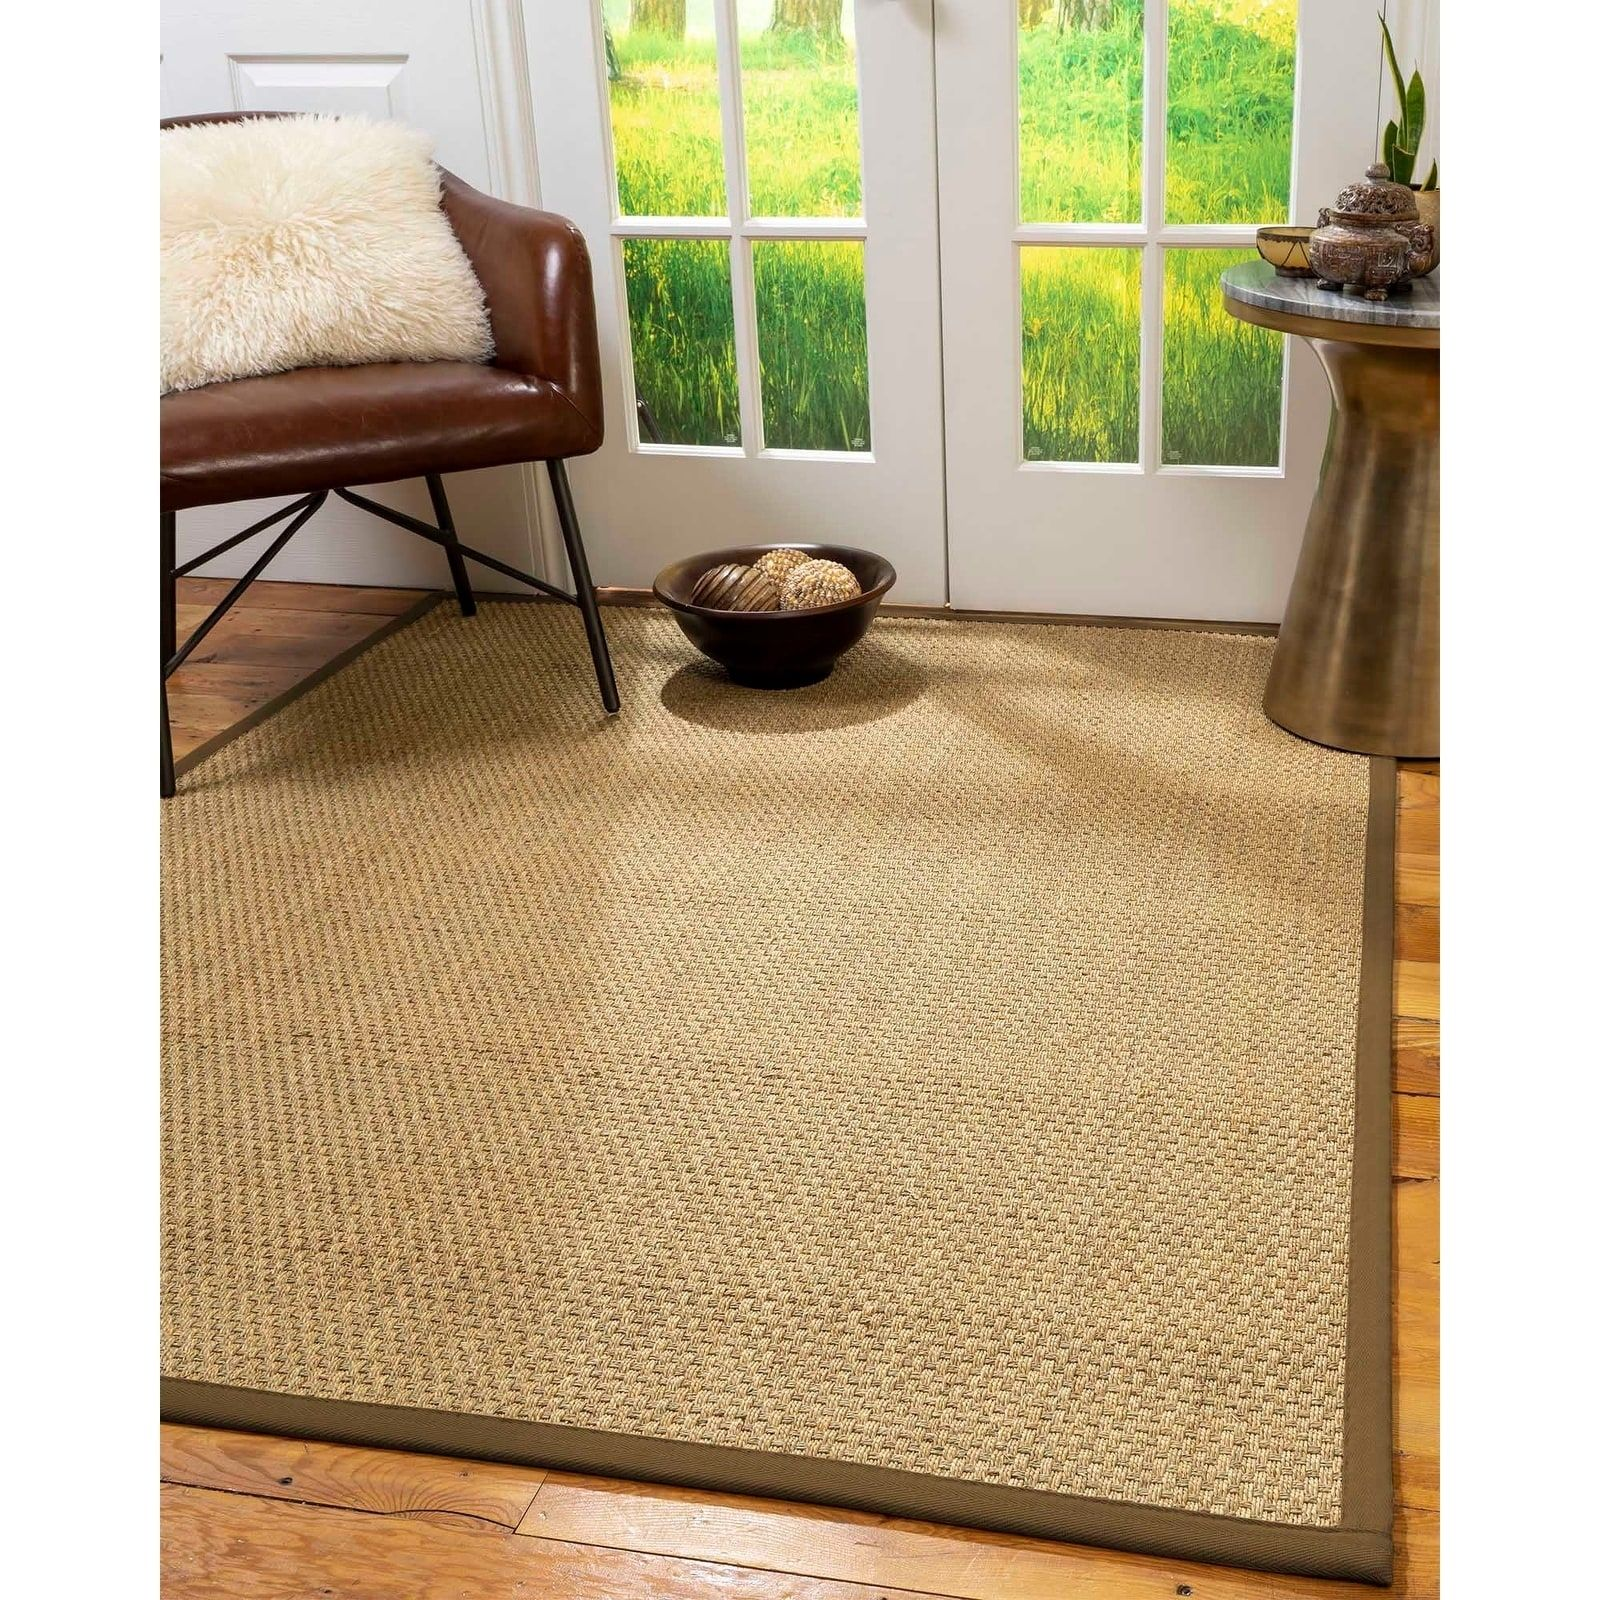 Natural Area Rugs 100 Natural Fiber Handmade Basket Weave Calabria Natural Seagrass Rug Malt Border 10 X 14 Ivor Natural Area Rugs Sisal Rug Area Rugs